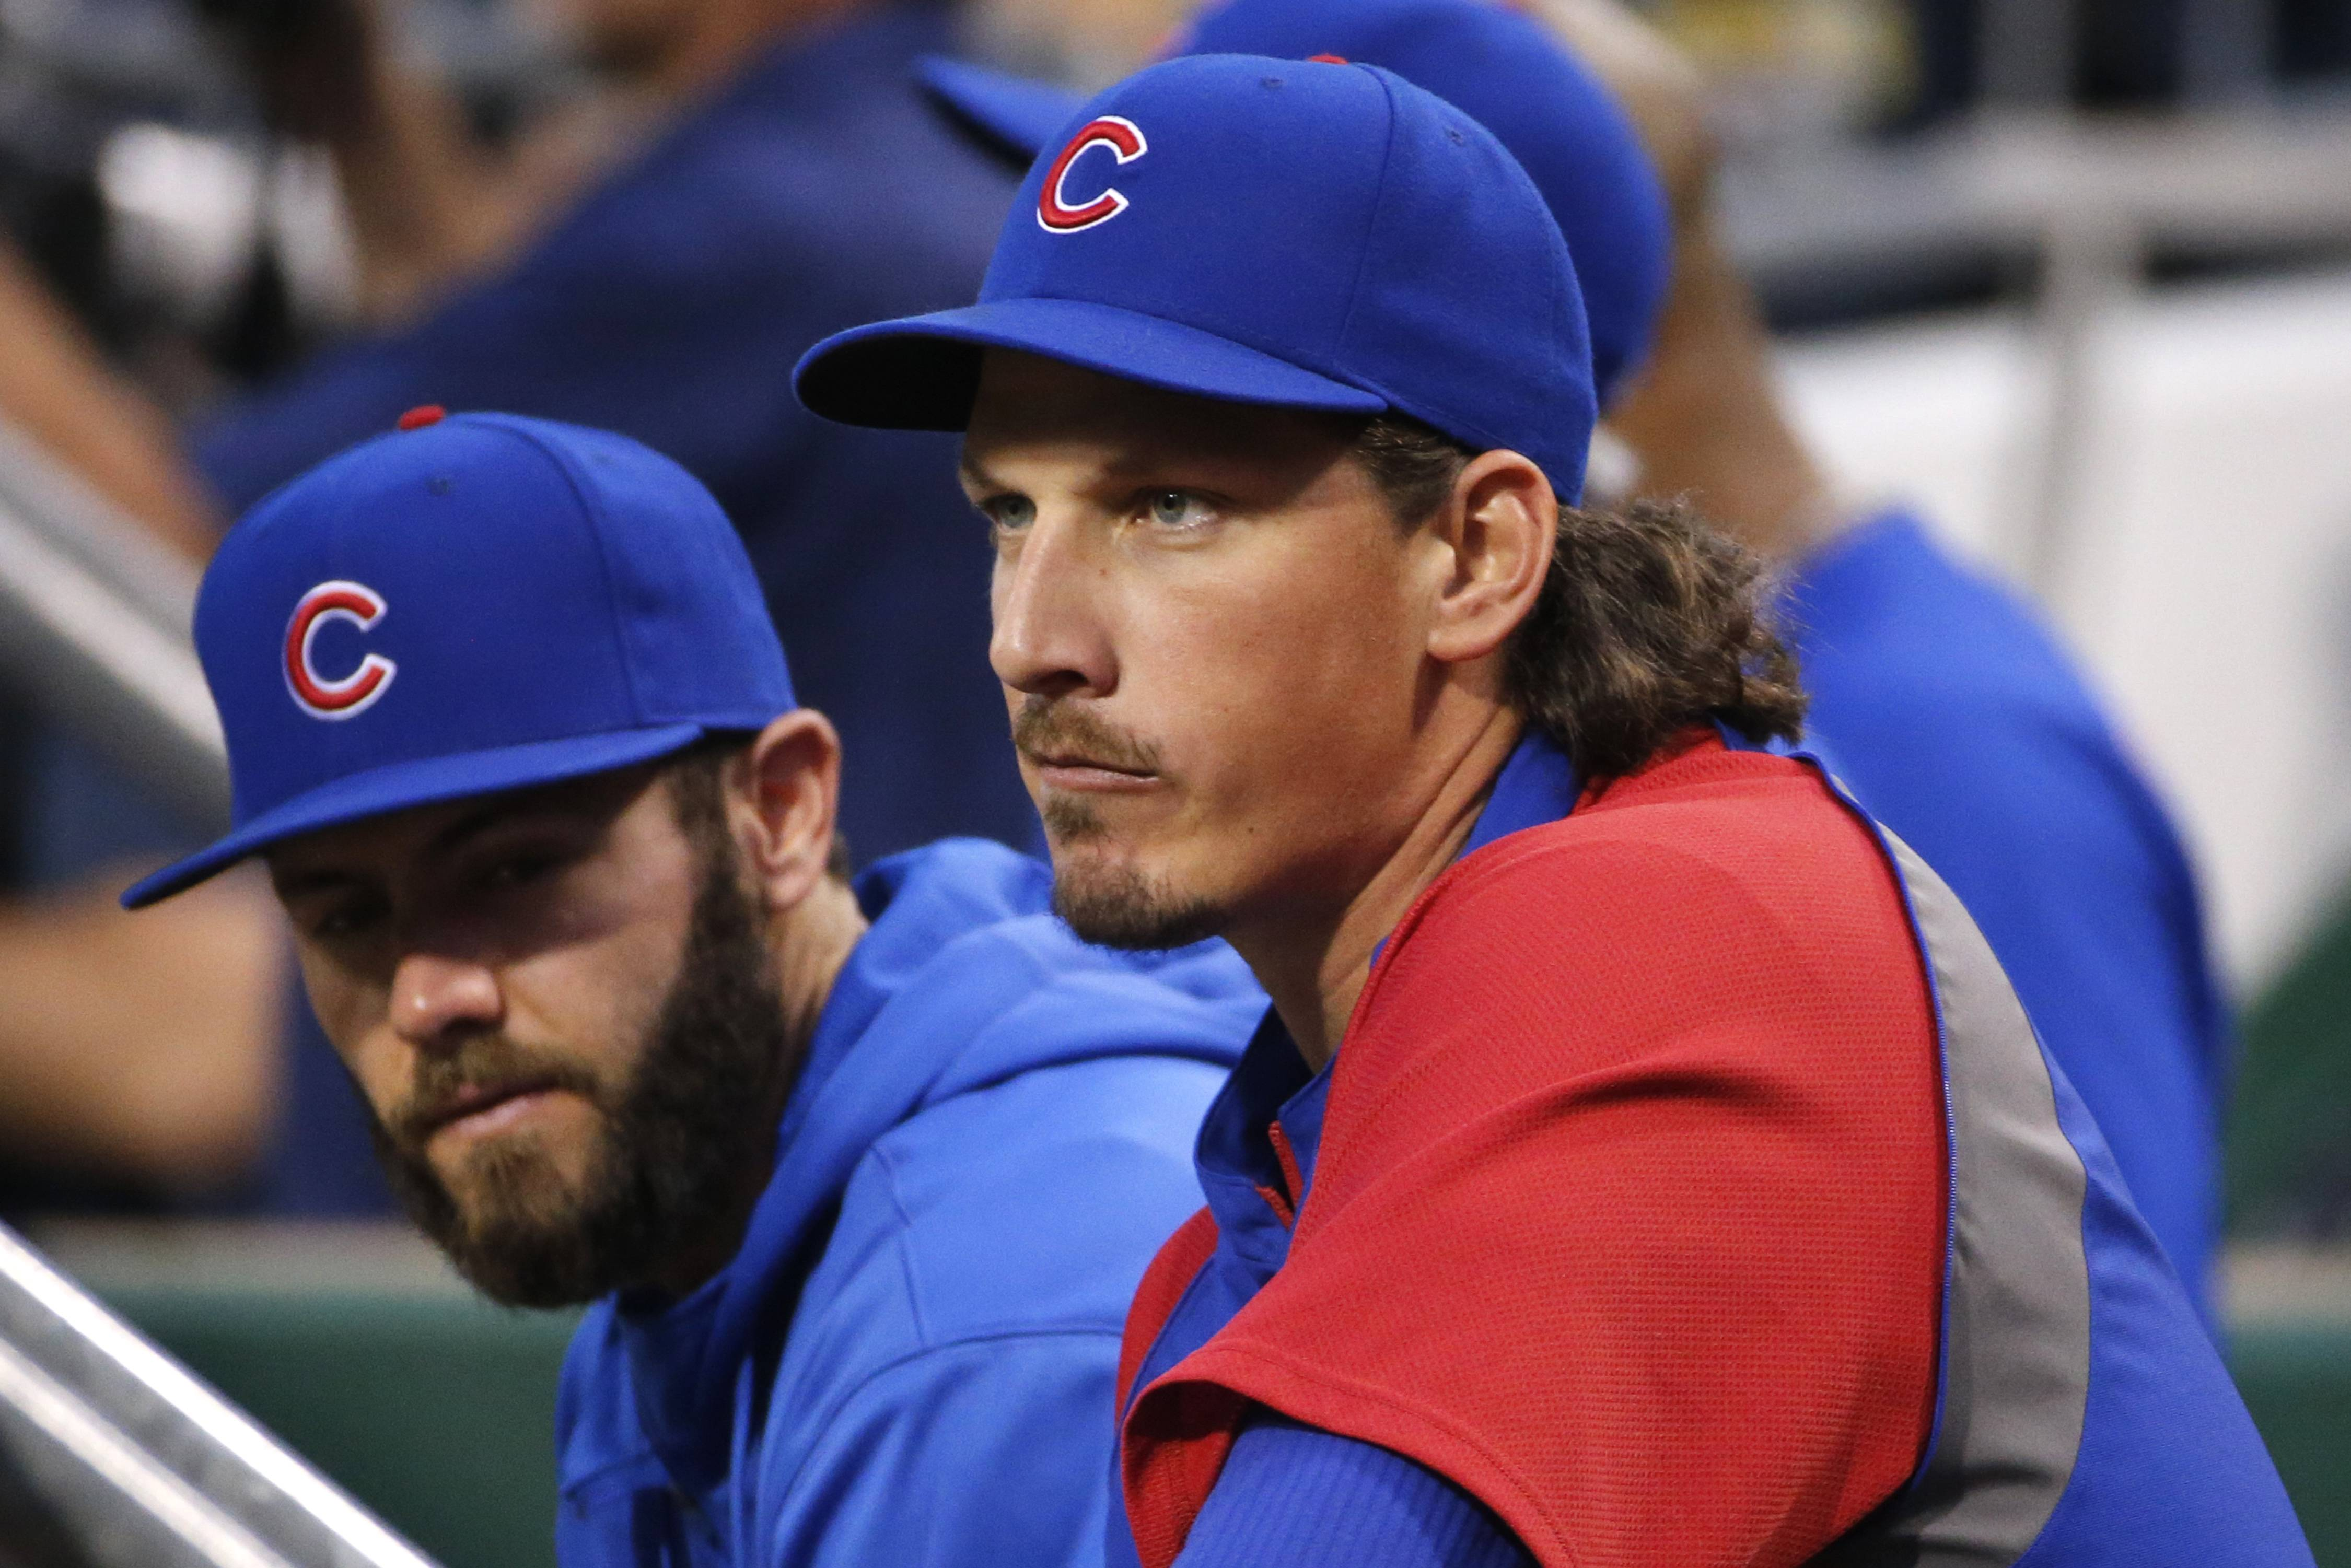 Cubs starting pitcher Jeff Samardzija could very well be traded soon only to return as a free agent after the 2015 season.